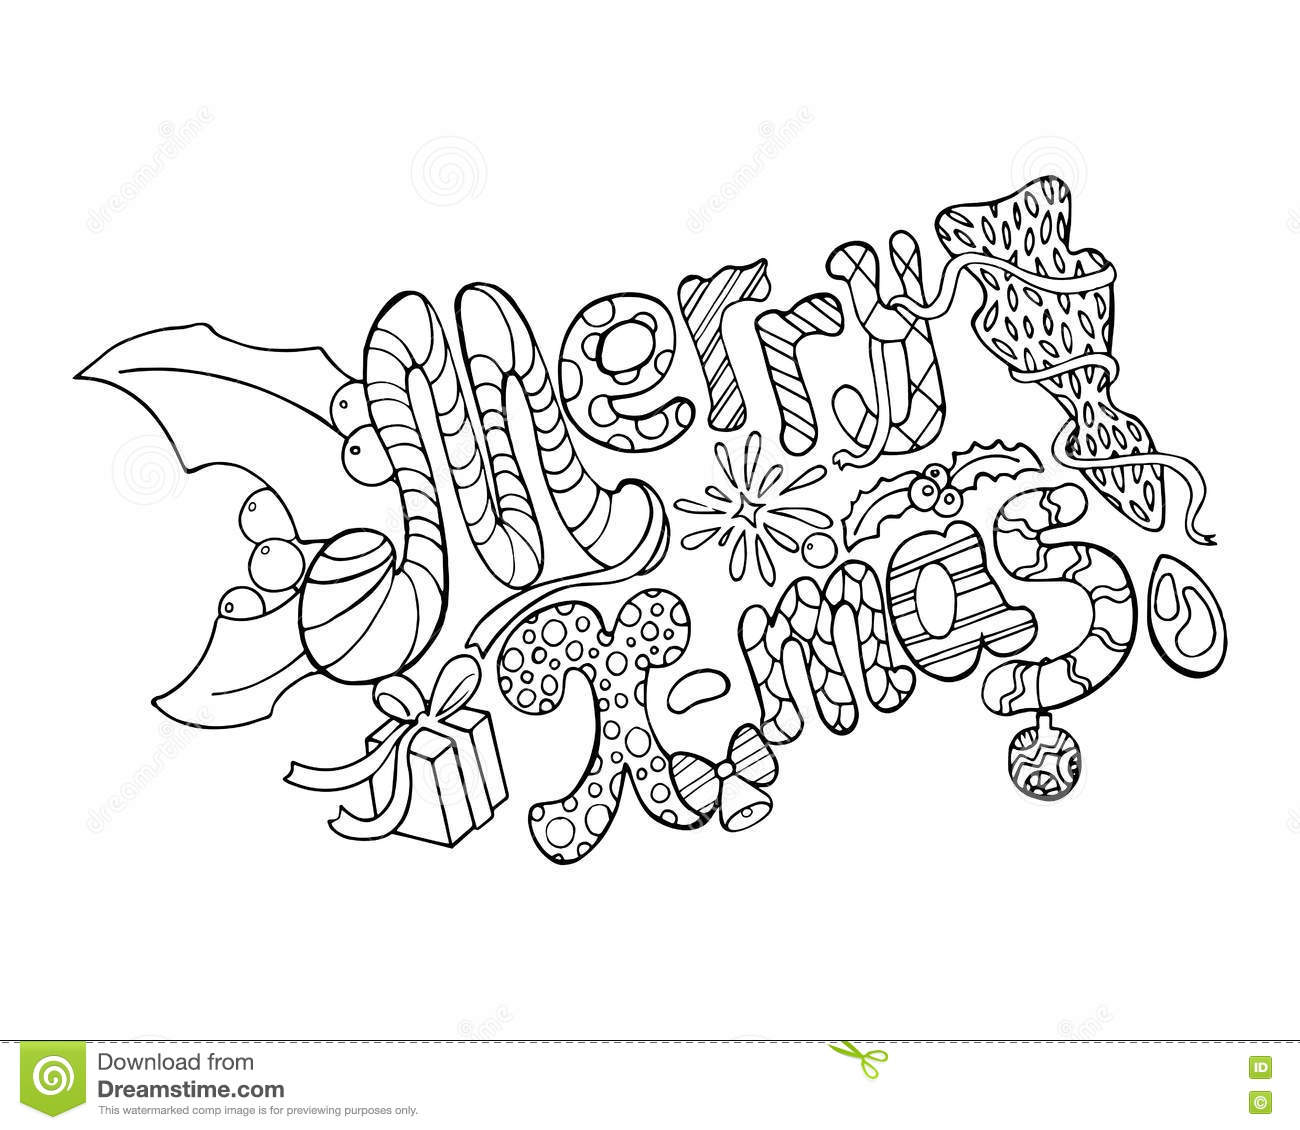 merry christmas illustration hand drawn lettering merry christmas coloring page